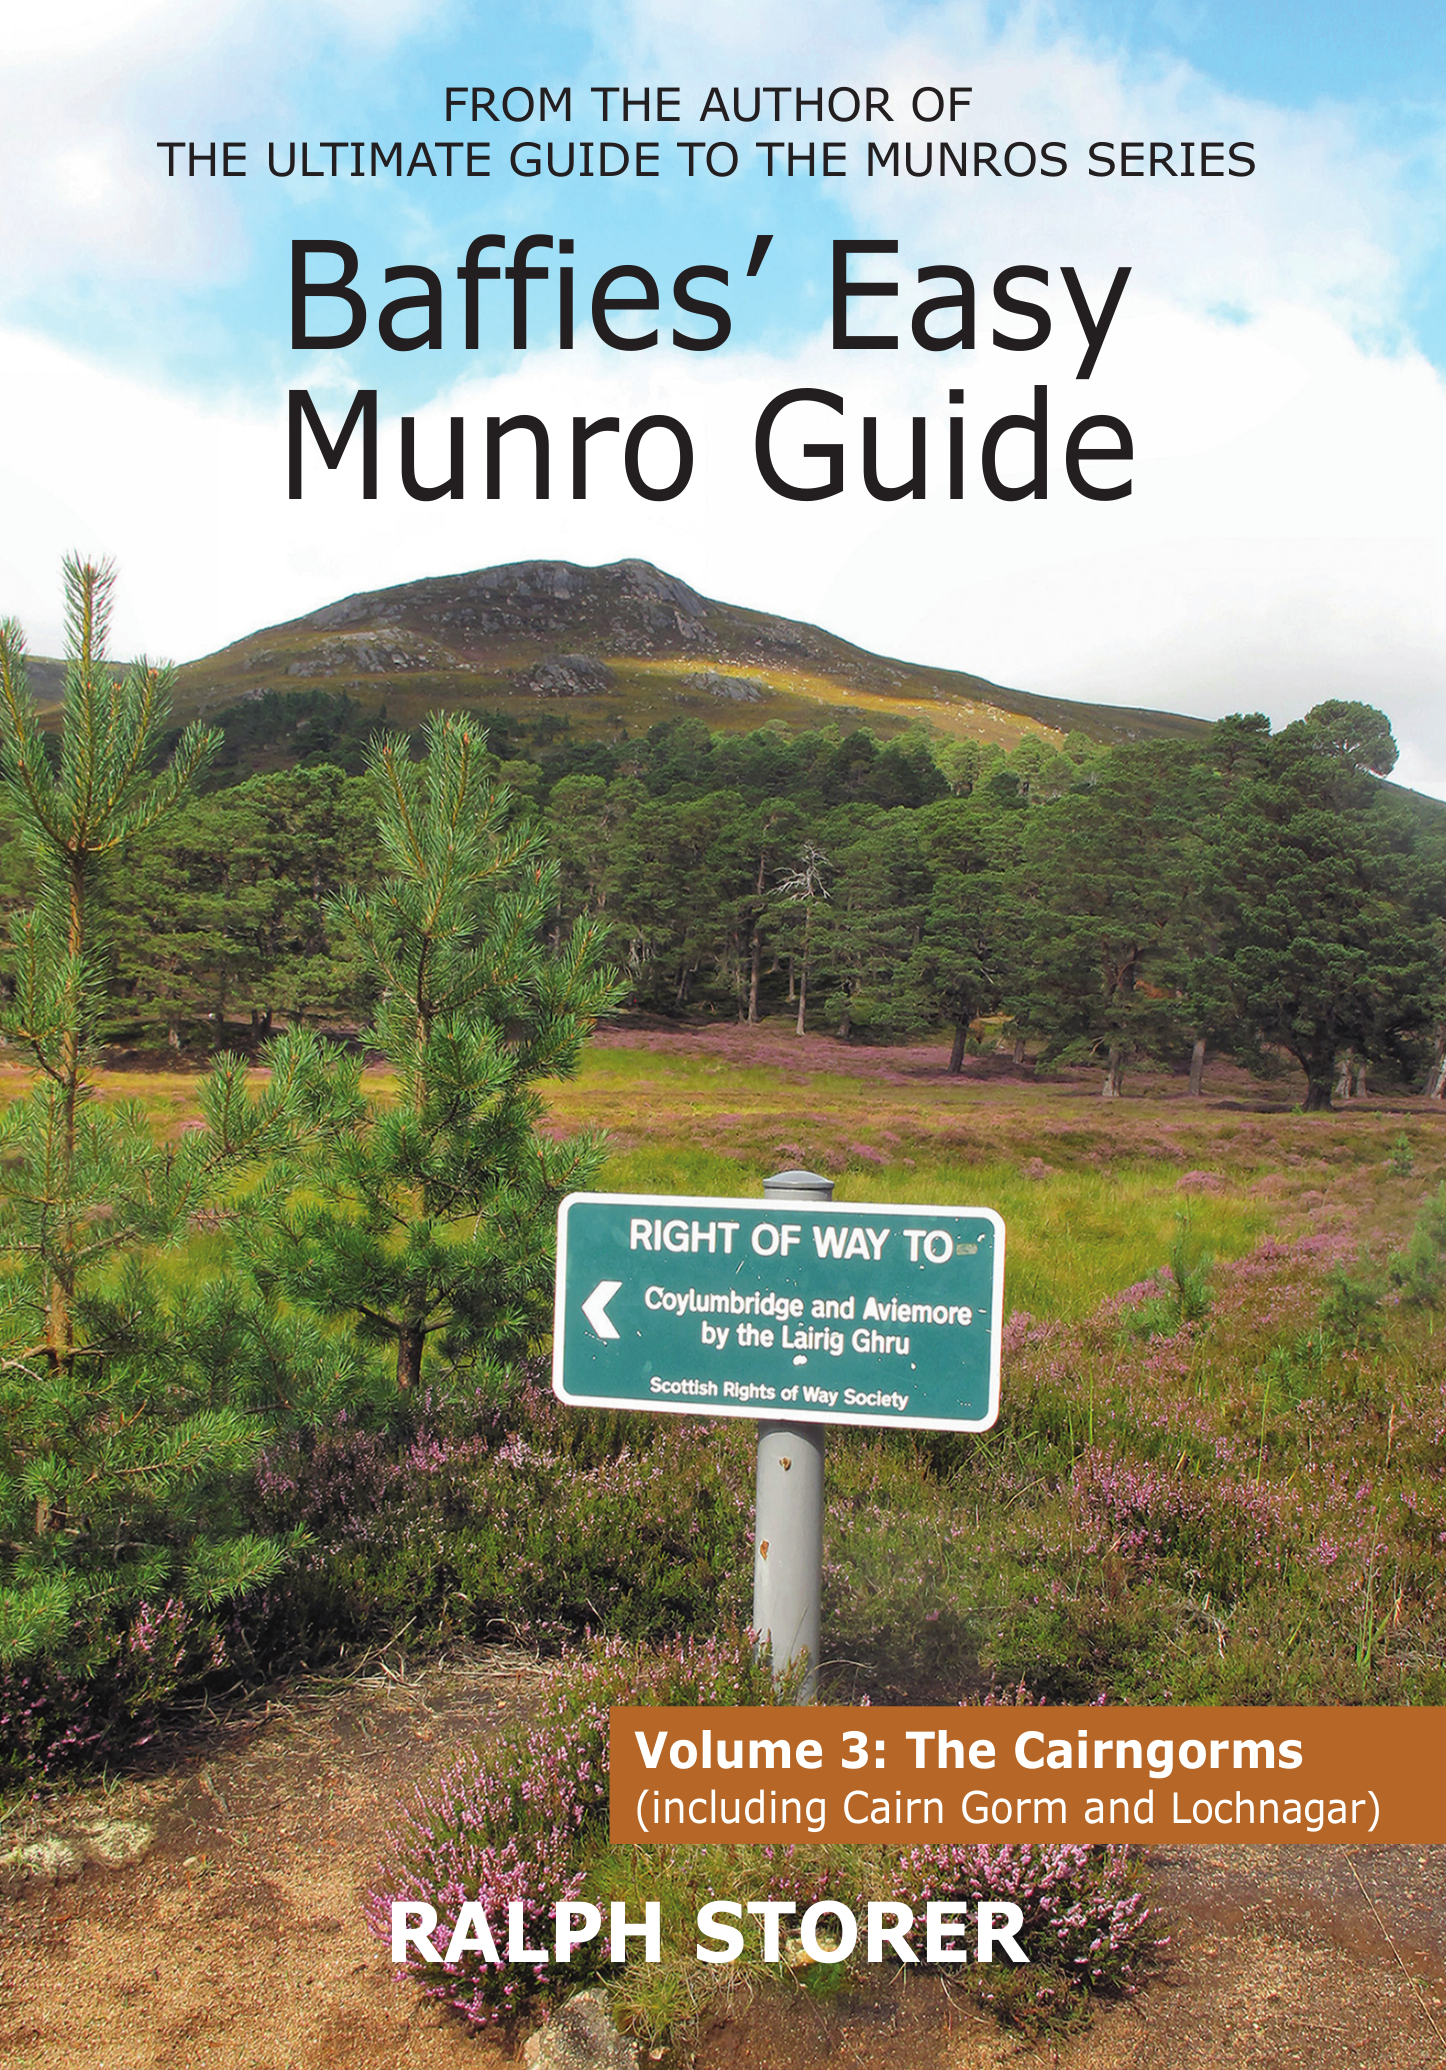 Baffies Easy Munro Guide: The Cairngorms